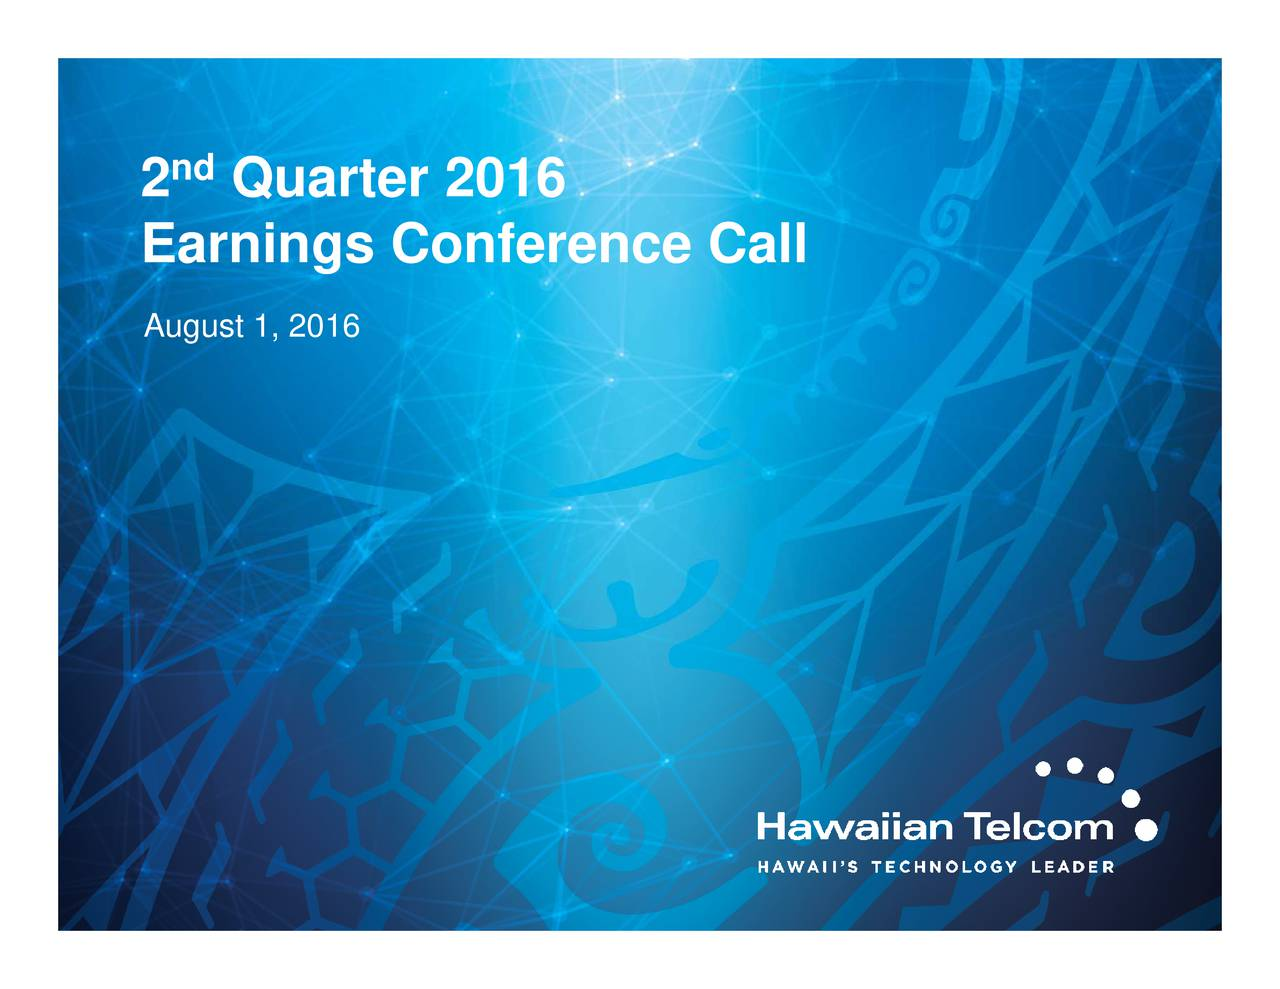 nd 2 Earnings Conference Call